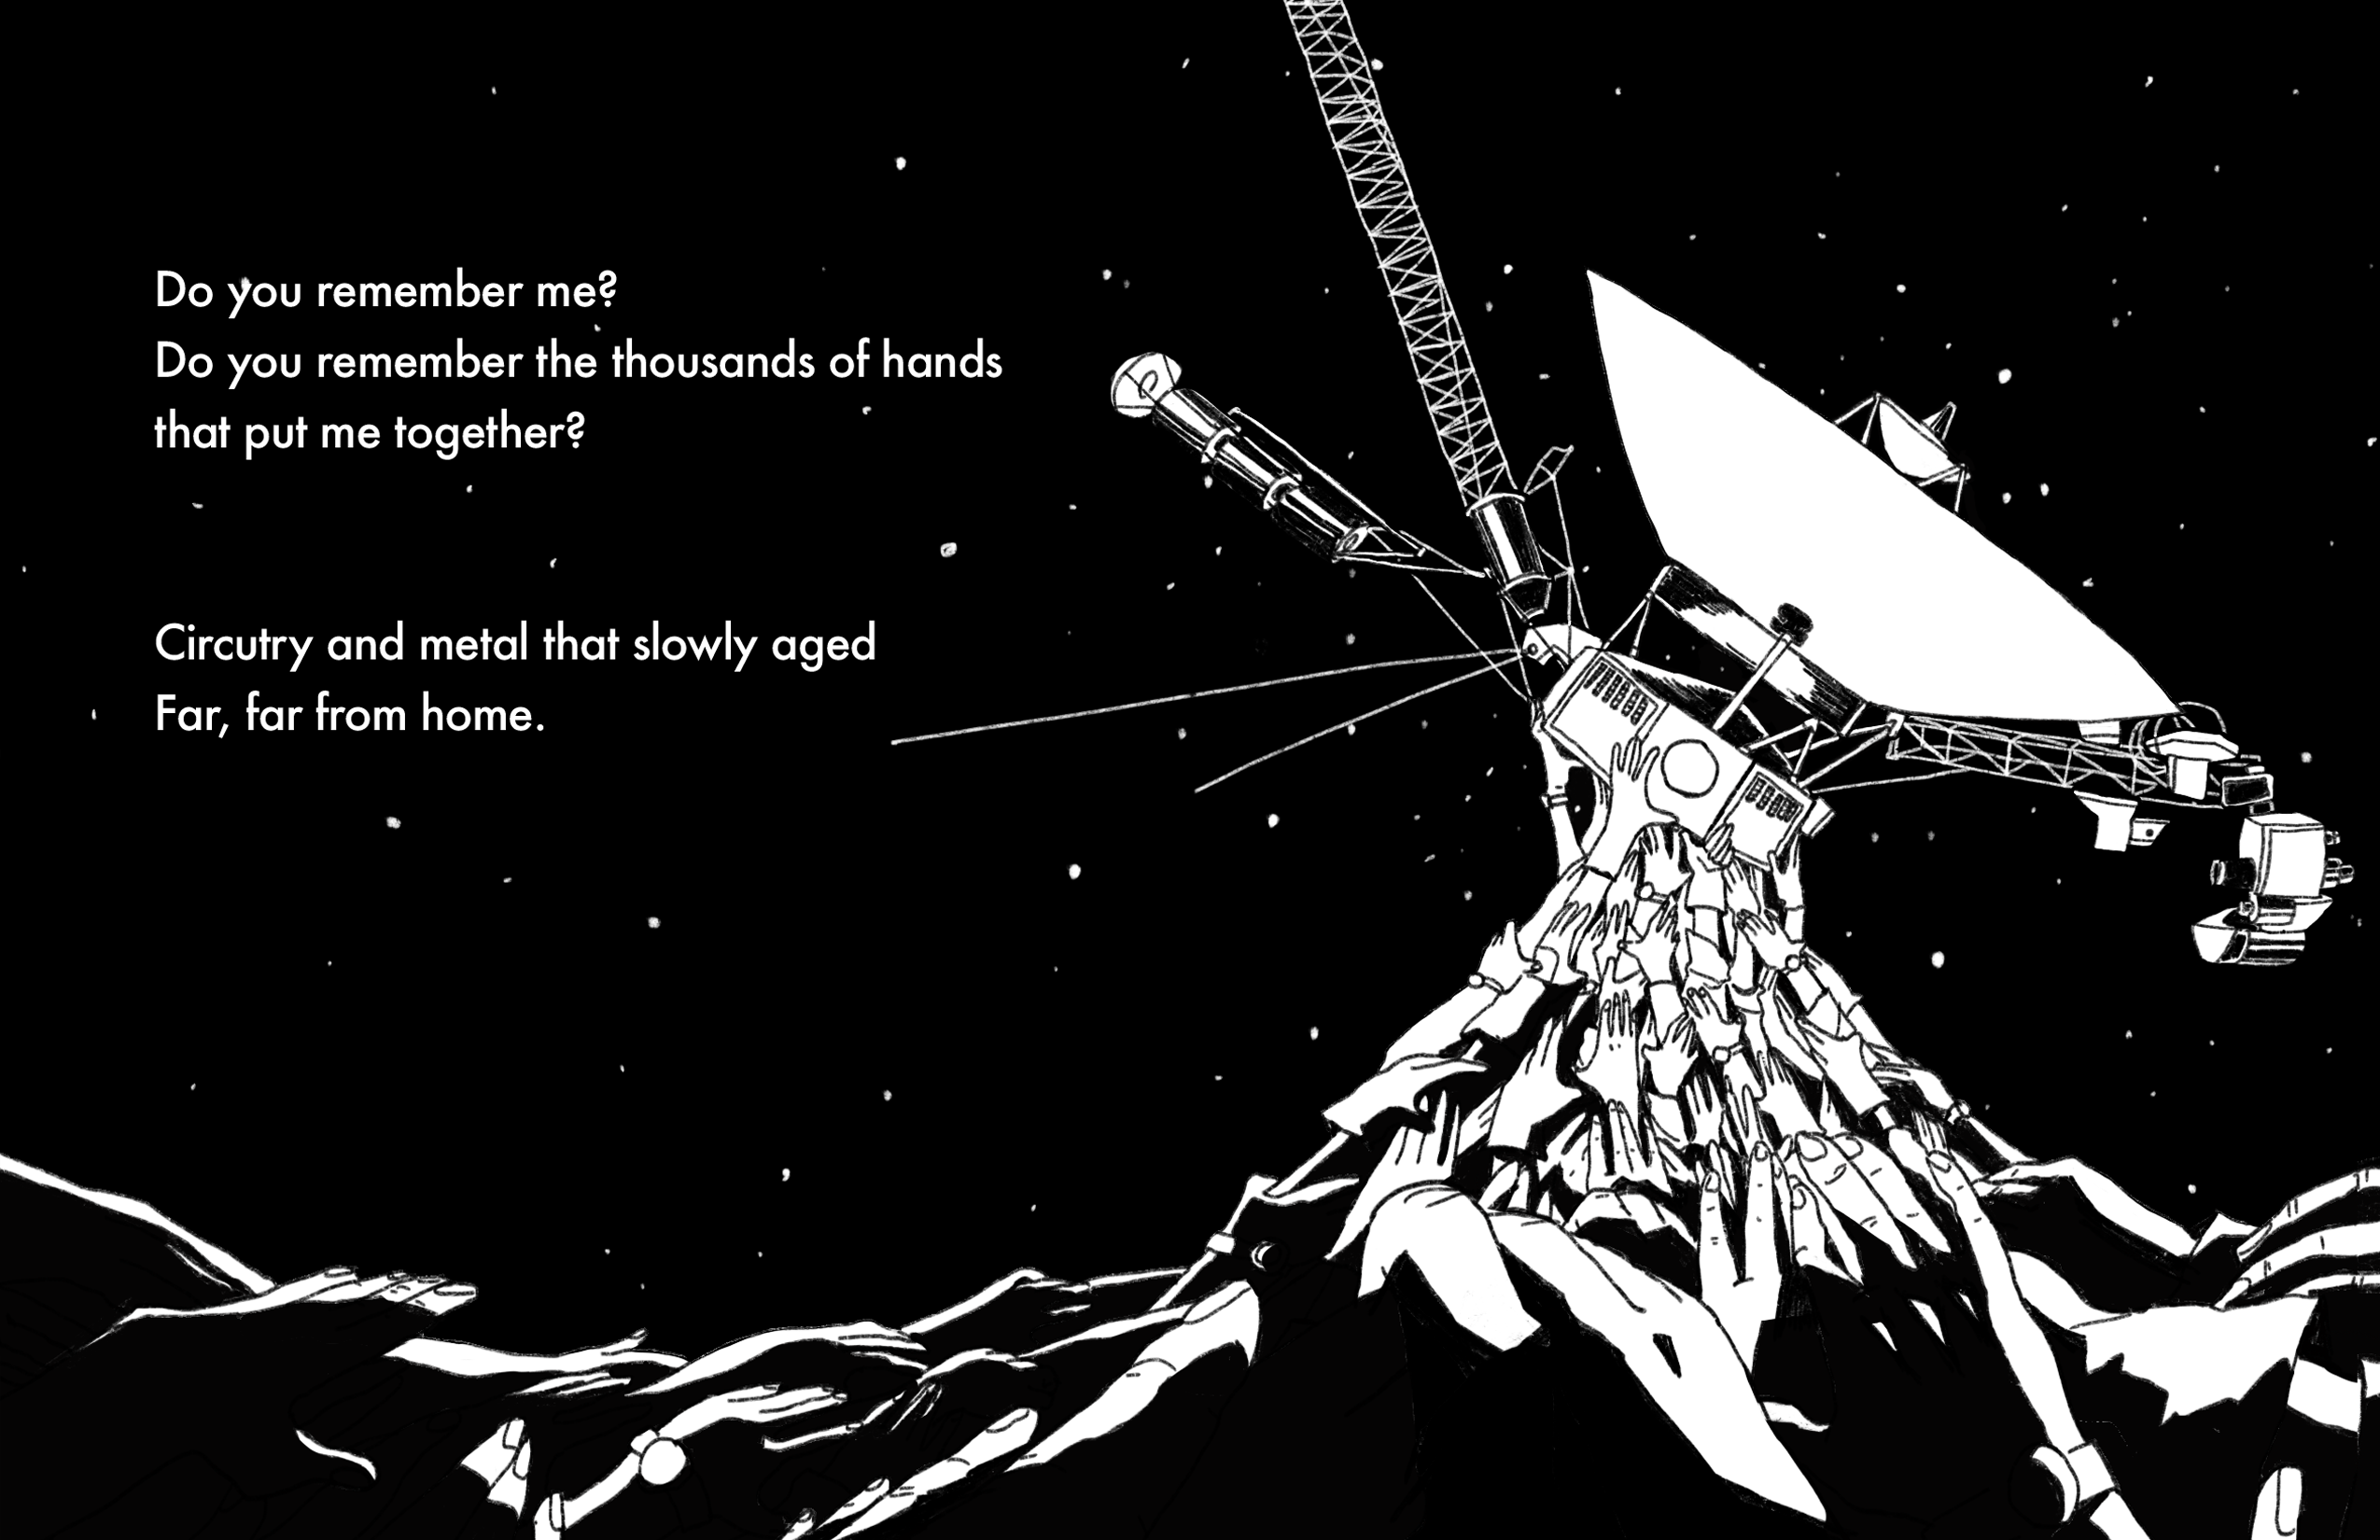 """Against a starry, black sky, Voyager 1 held up by a mountain of hands adorned with watches and gloves, representing all the people that helped build it. Black and white image. Text reads: """"Do you remember me? / Do you remember the thousands of hands"""